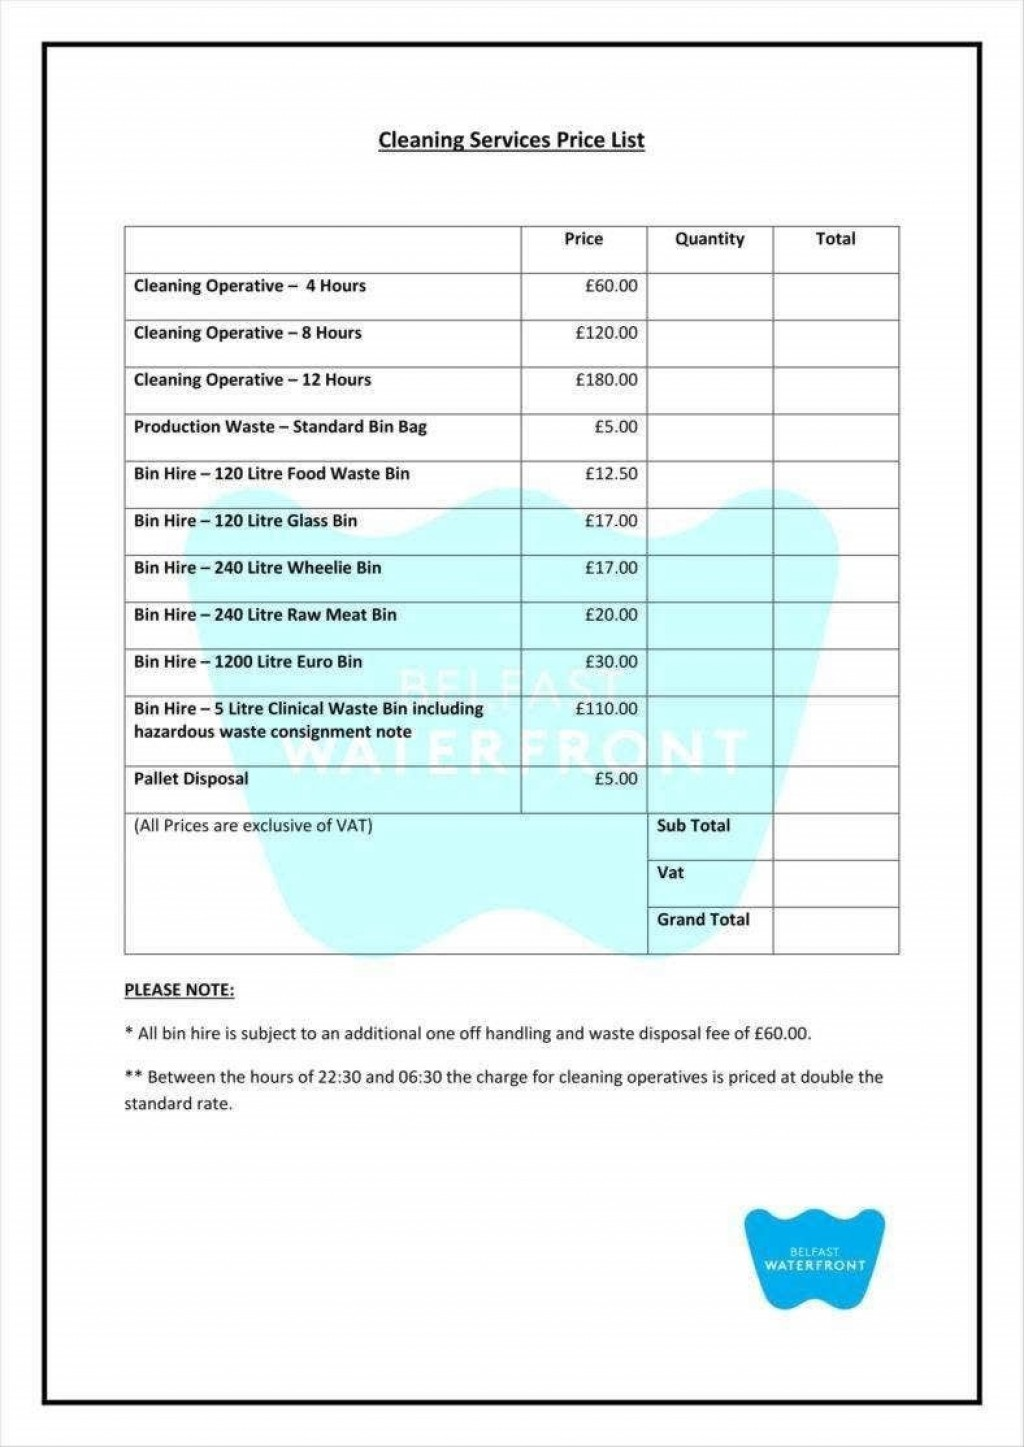 000 Impressive Cleaning Service Price List Template Example  Commercial PdfLarge